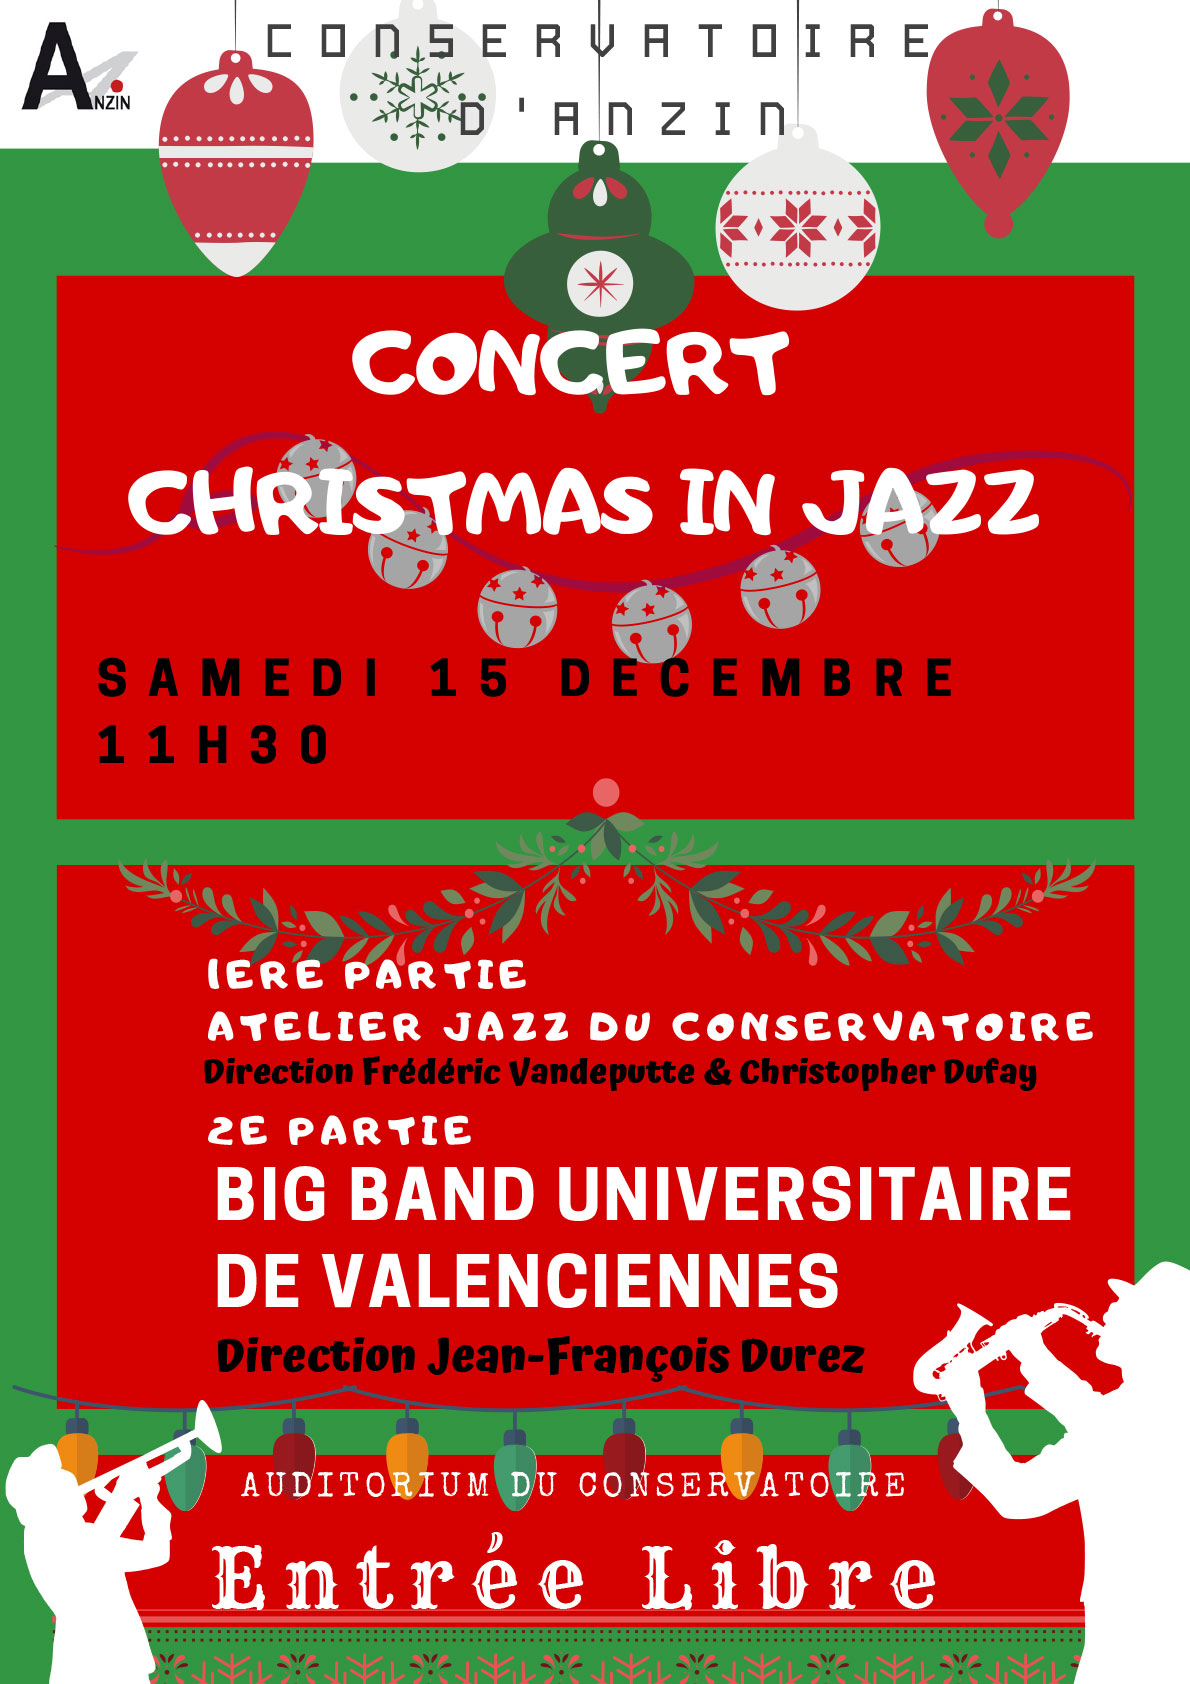 Concert Christmas in jazz